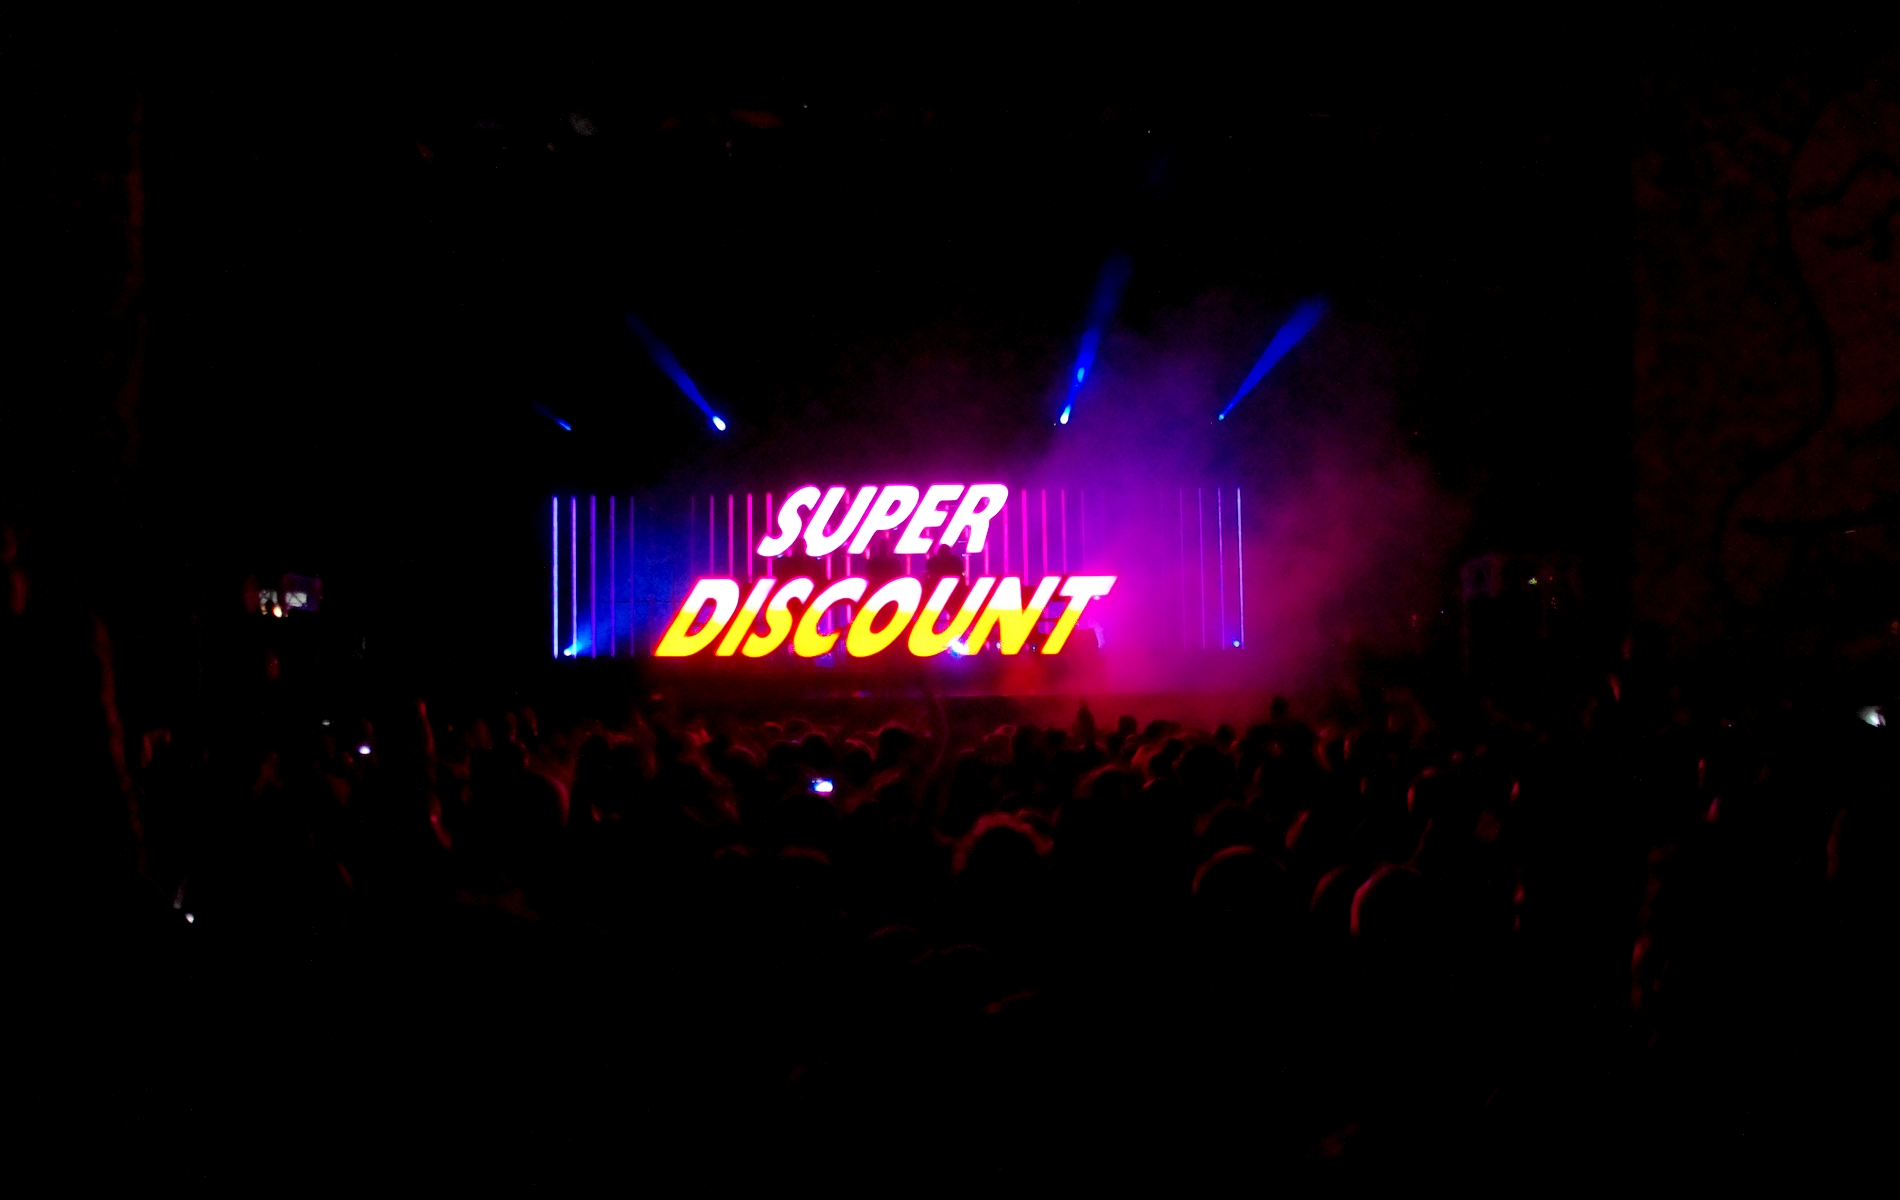 Super Discount 3 / Etienne De Crecy - Art Rock 2015 - Sylvain Ernault - La Déviation